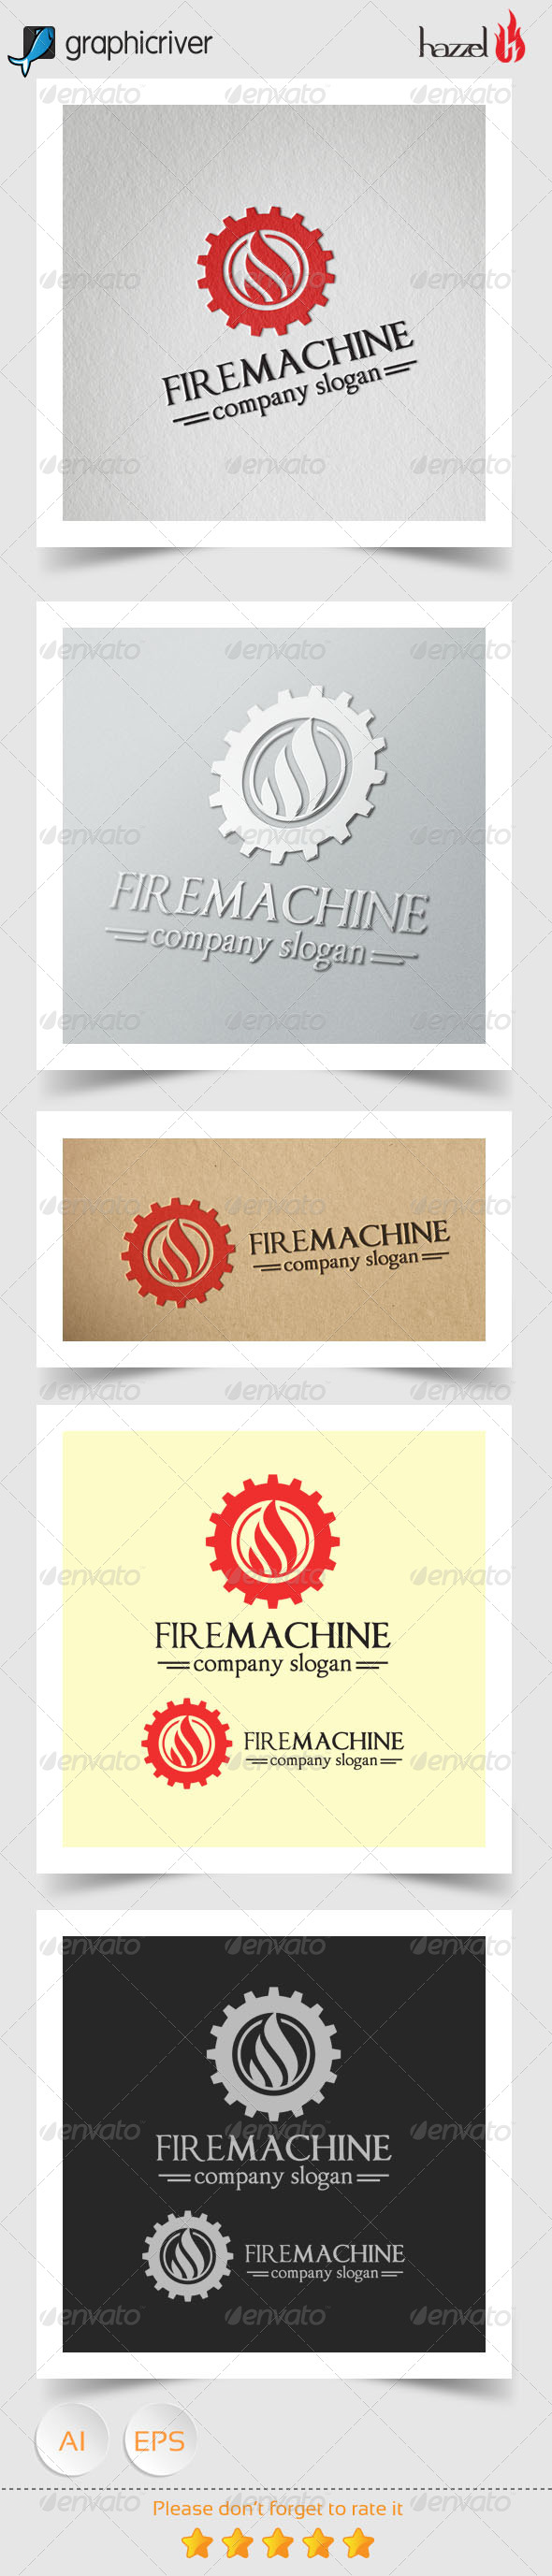 Fire Machine Logo